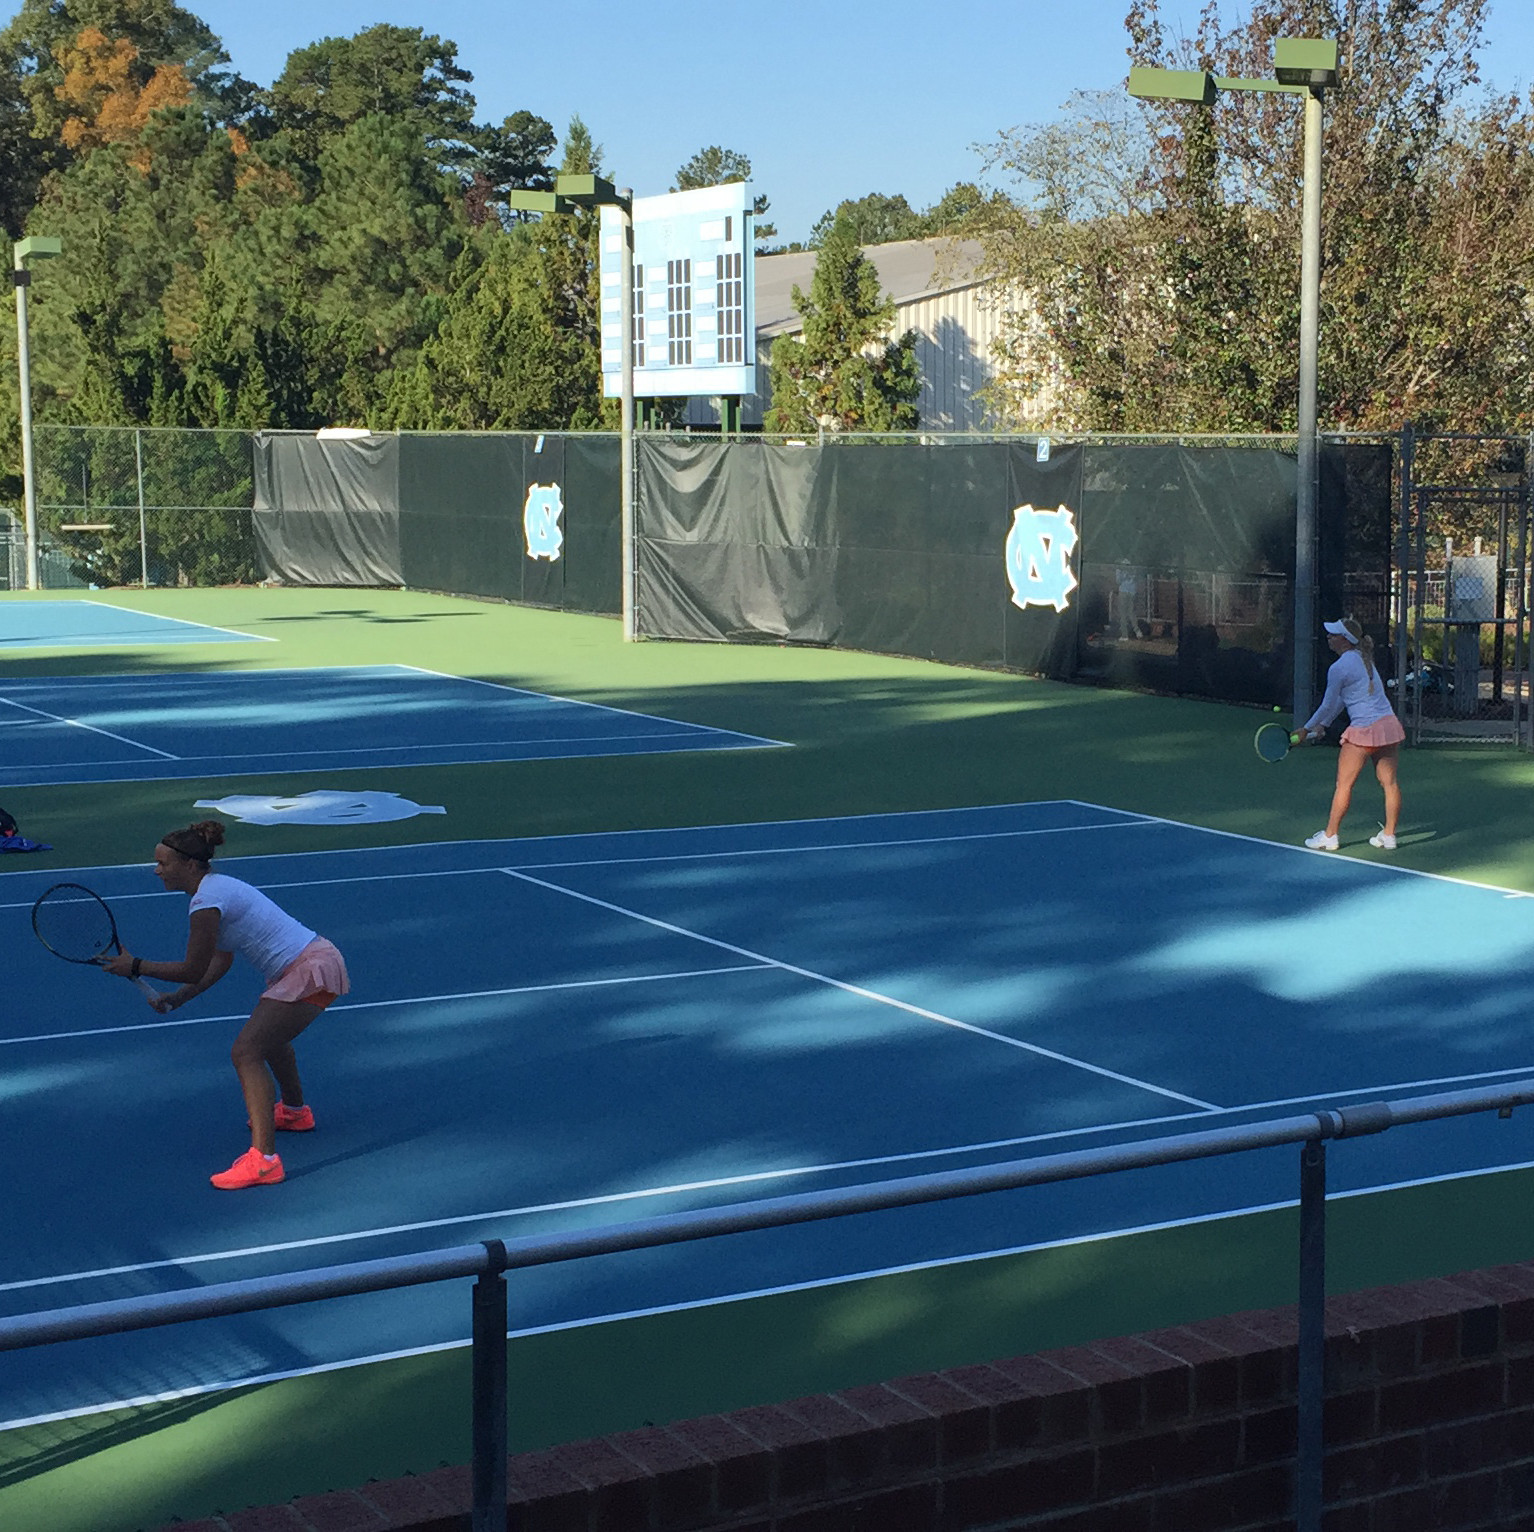 Eidukonyte & Piontek Advance to Doubles Quarterfinals at ITA Carolina Regional